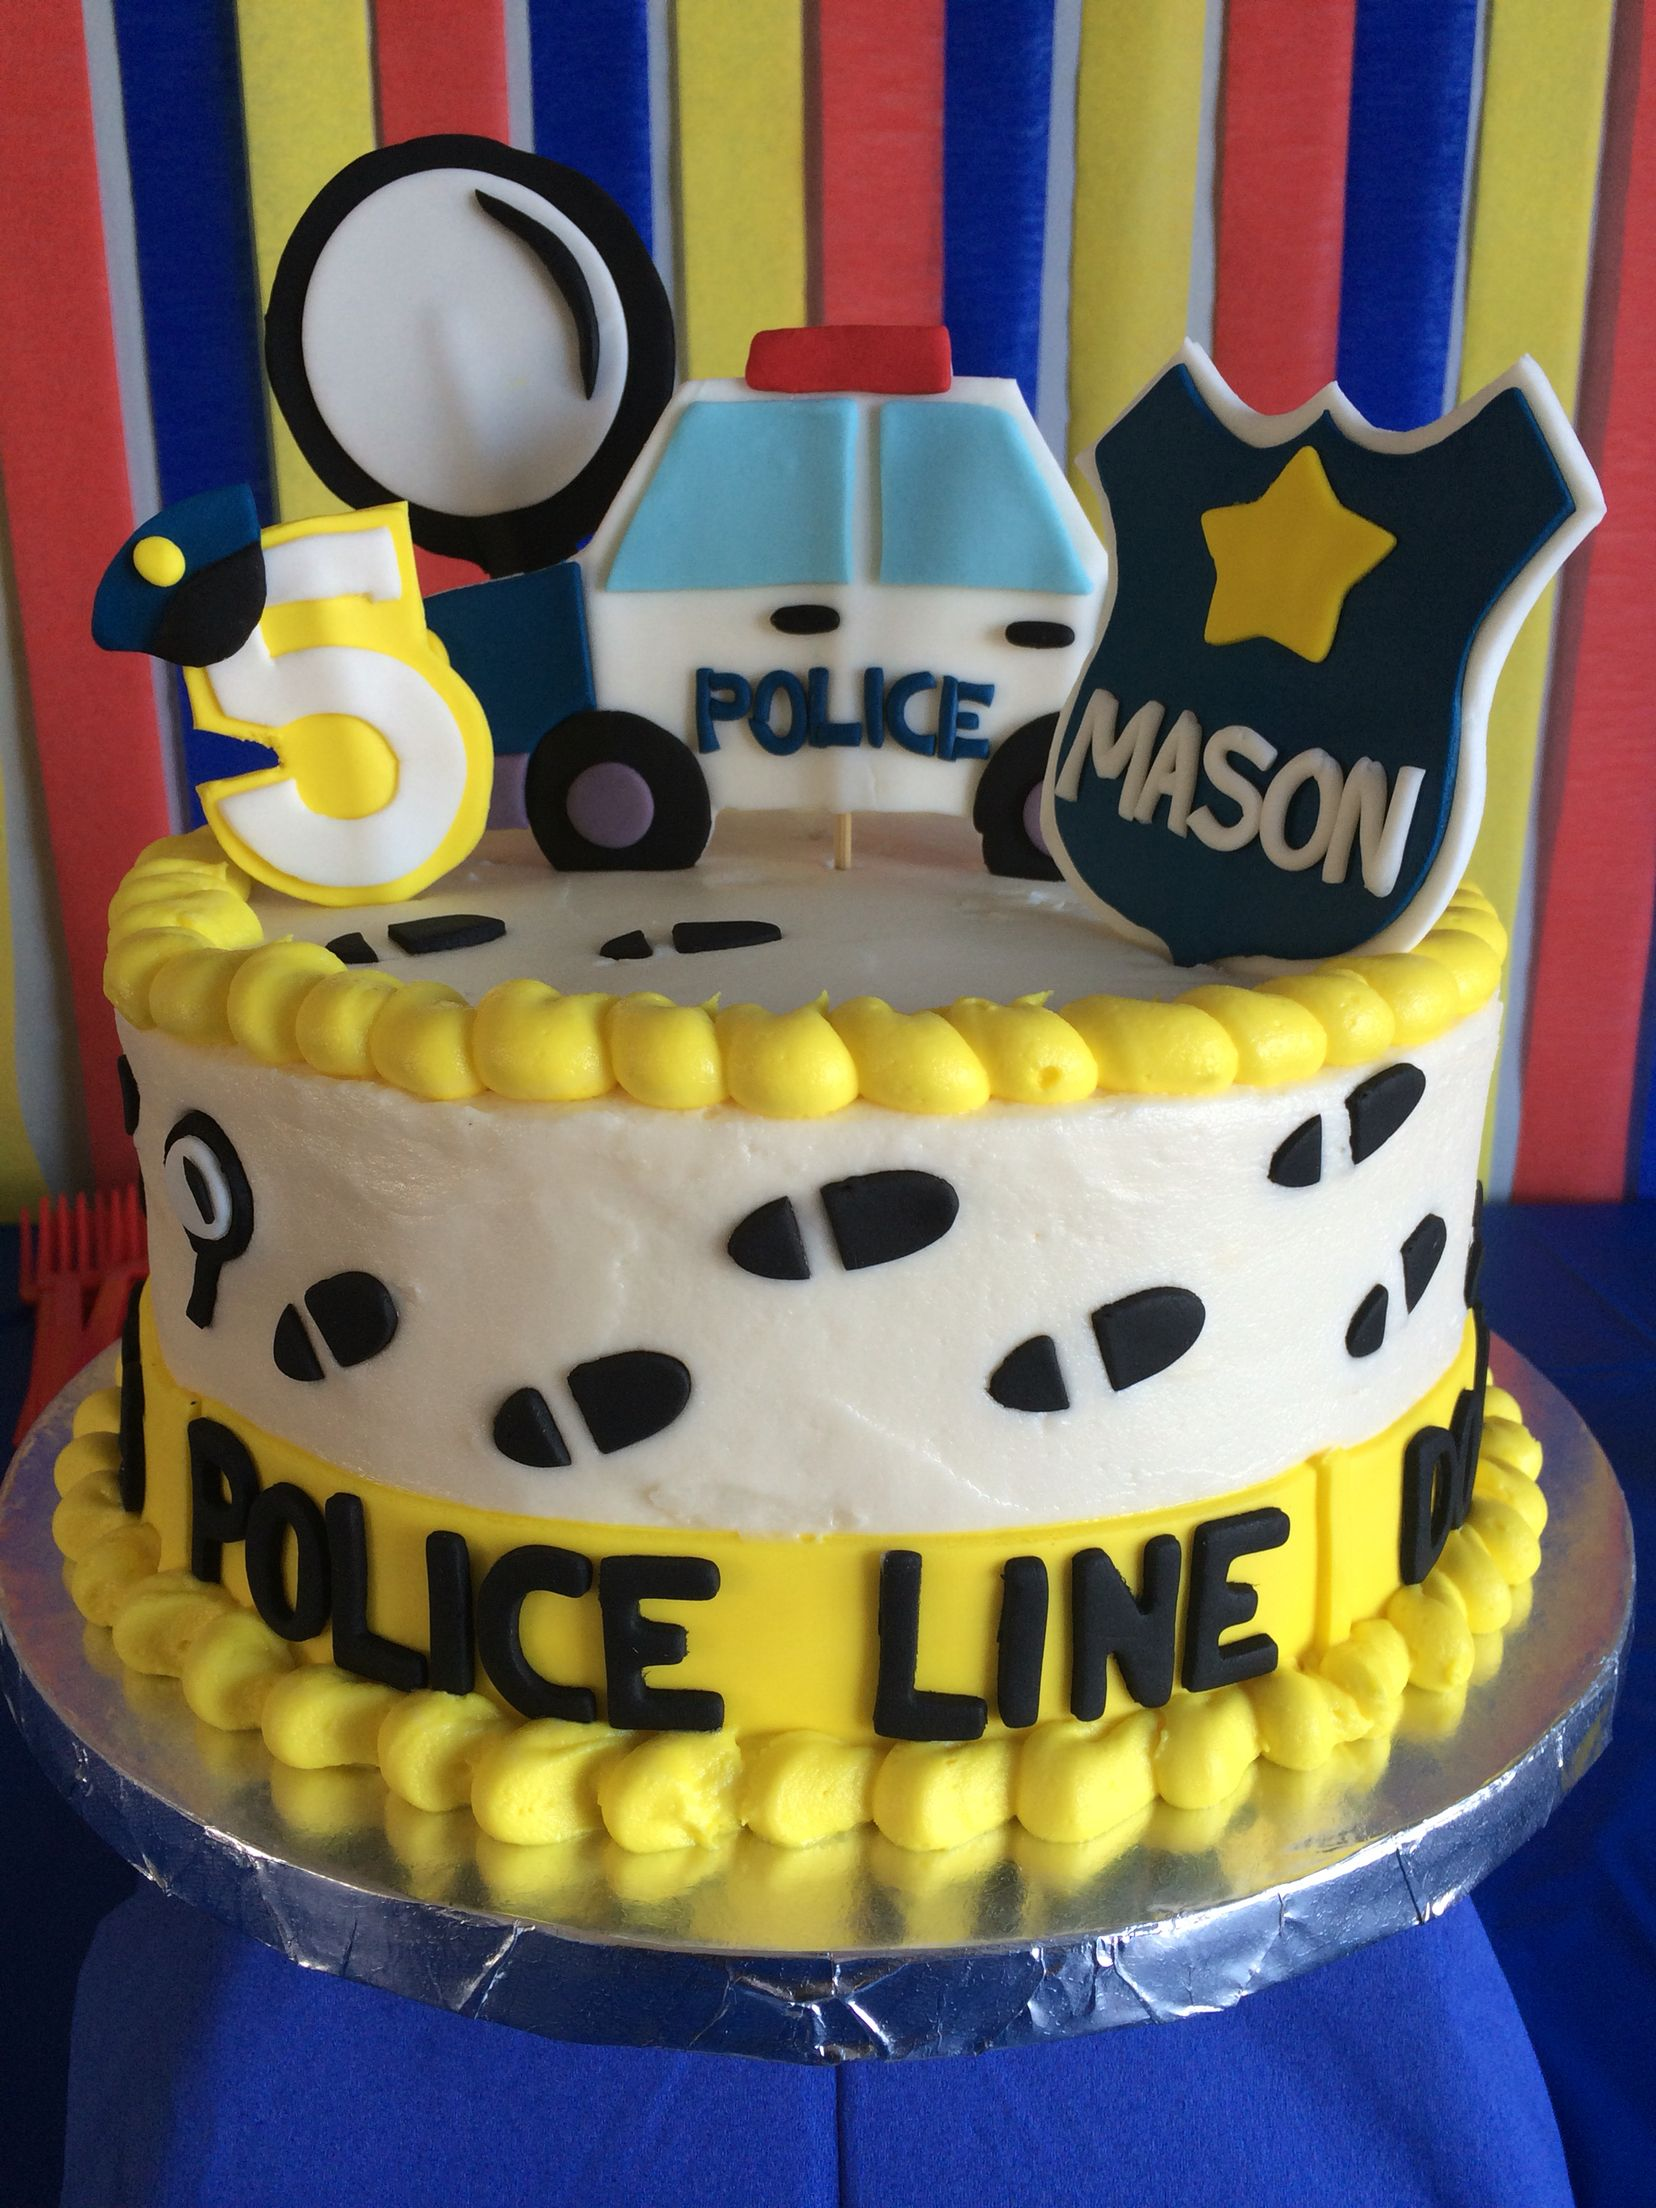 Incredible Police Officer Birthday Cake With Images Police Birthday Cakes Funny Birthday Cards Online Alyptdamsfinfo